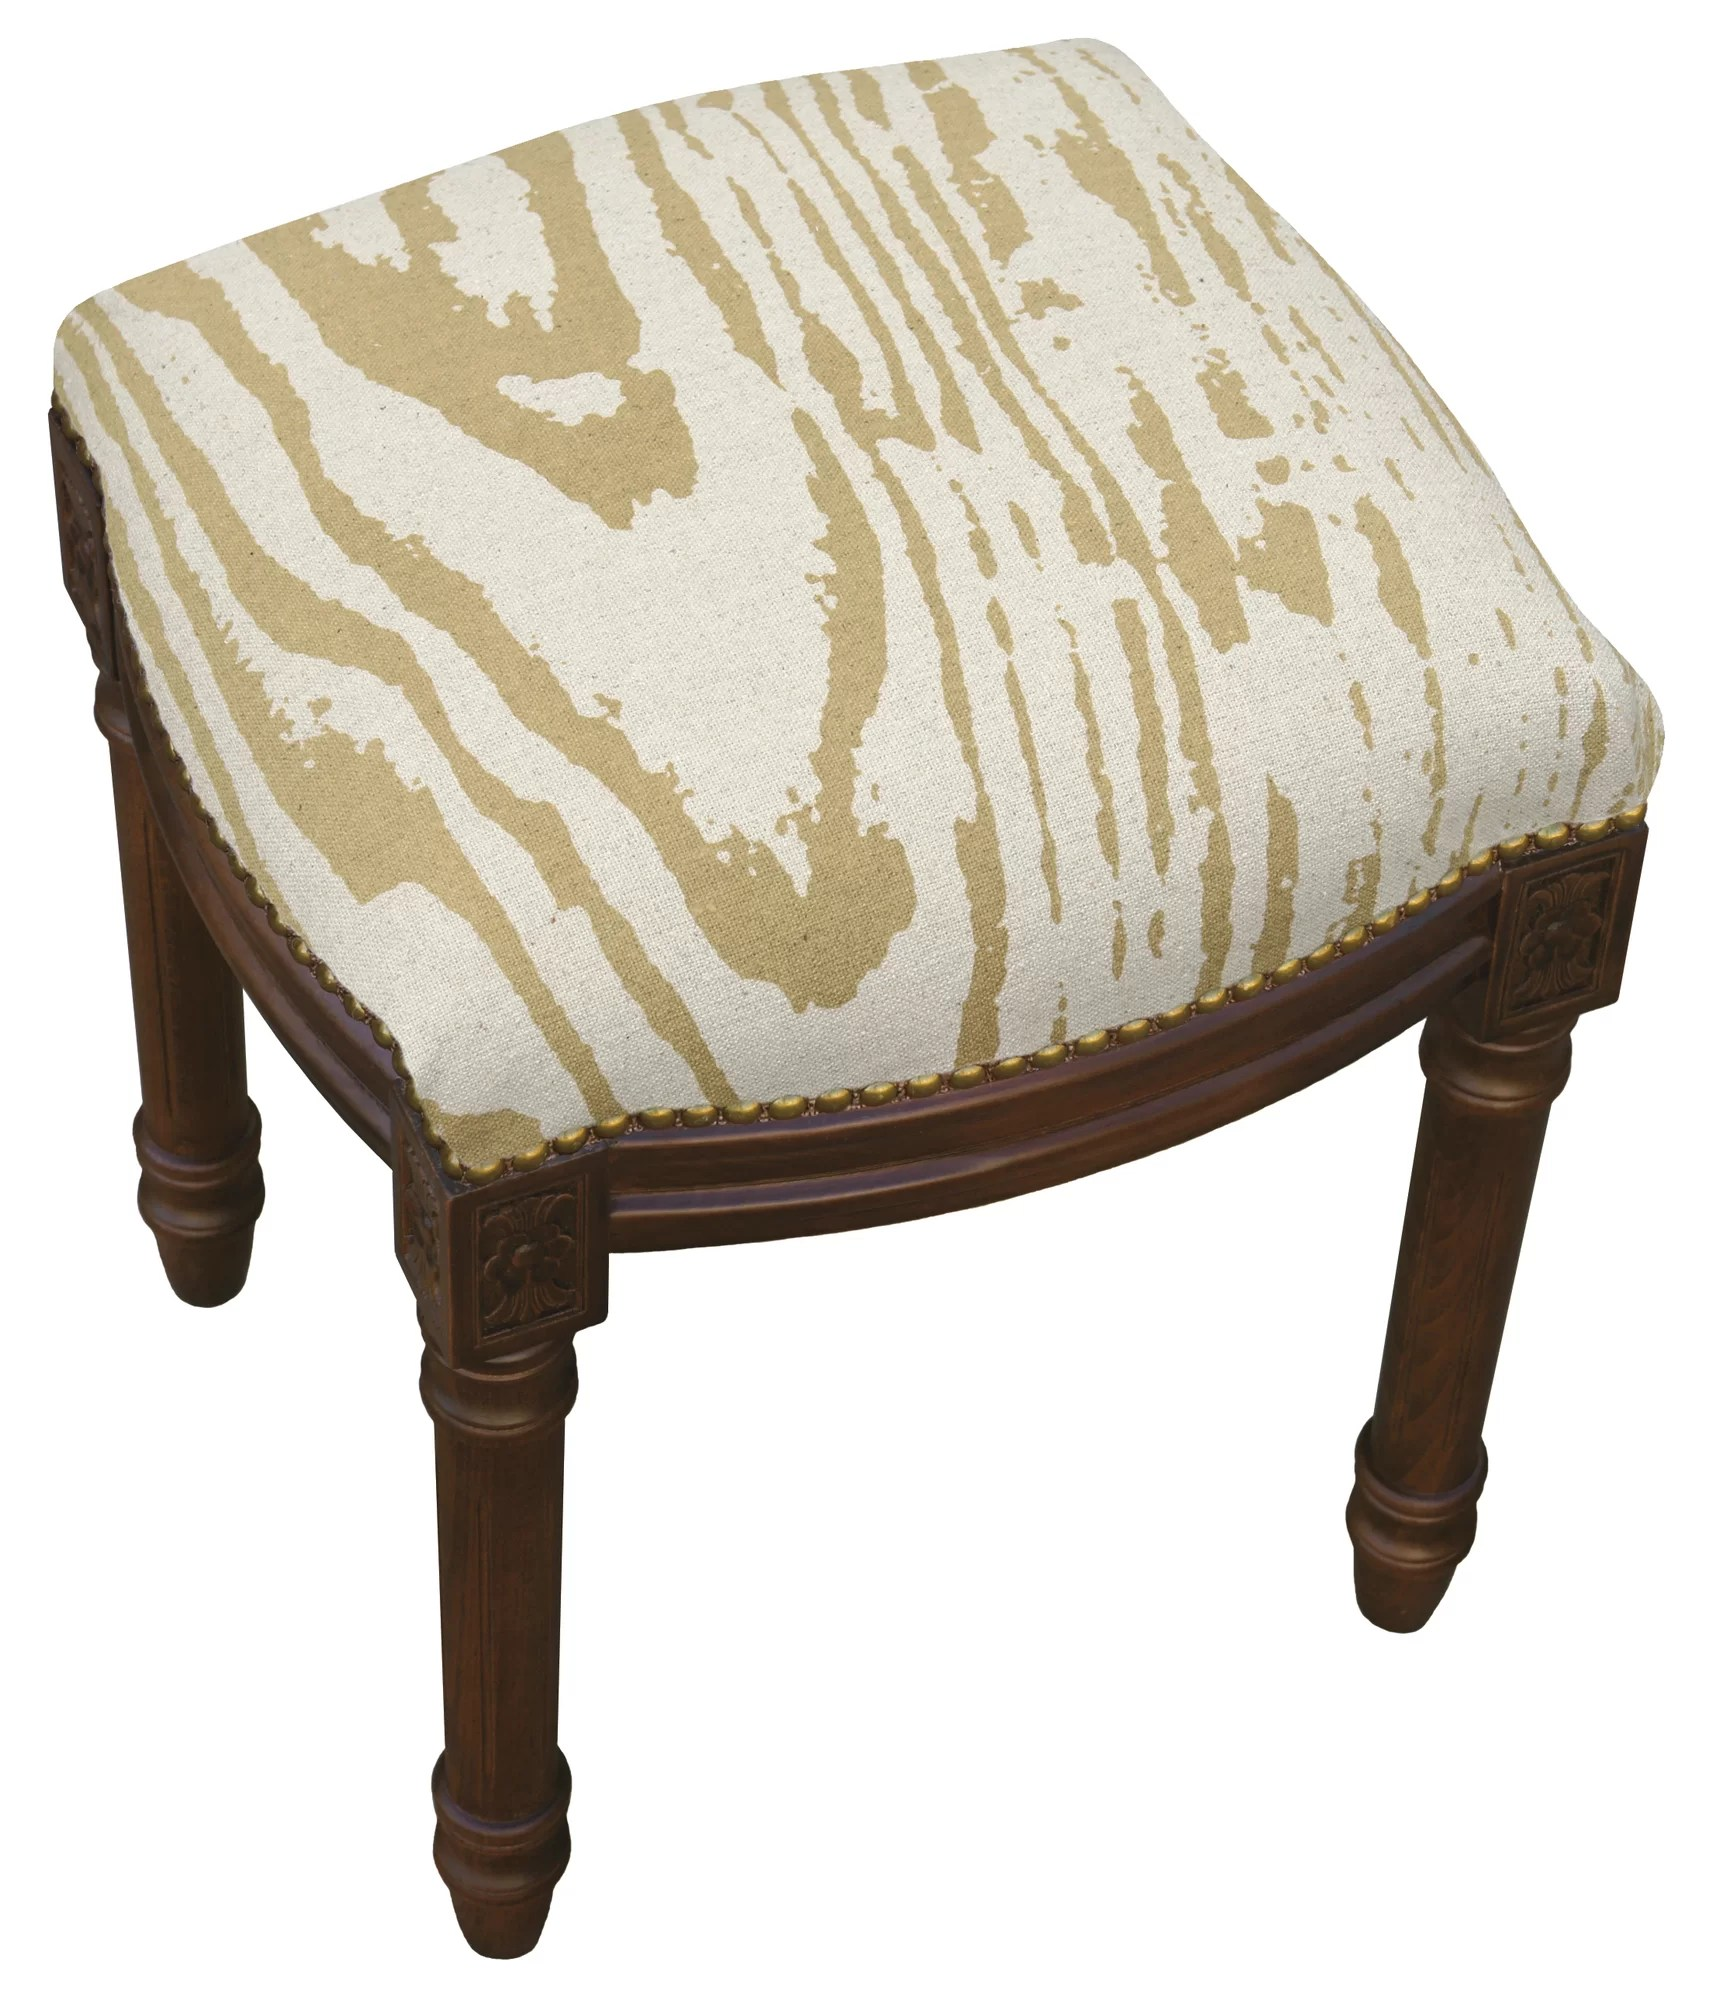 Upholstered Vanity Chair 123 Creations Graphic Faux Bois Linen Upholstered Vanity